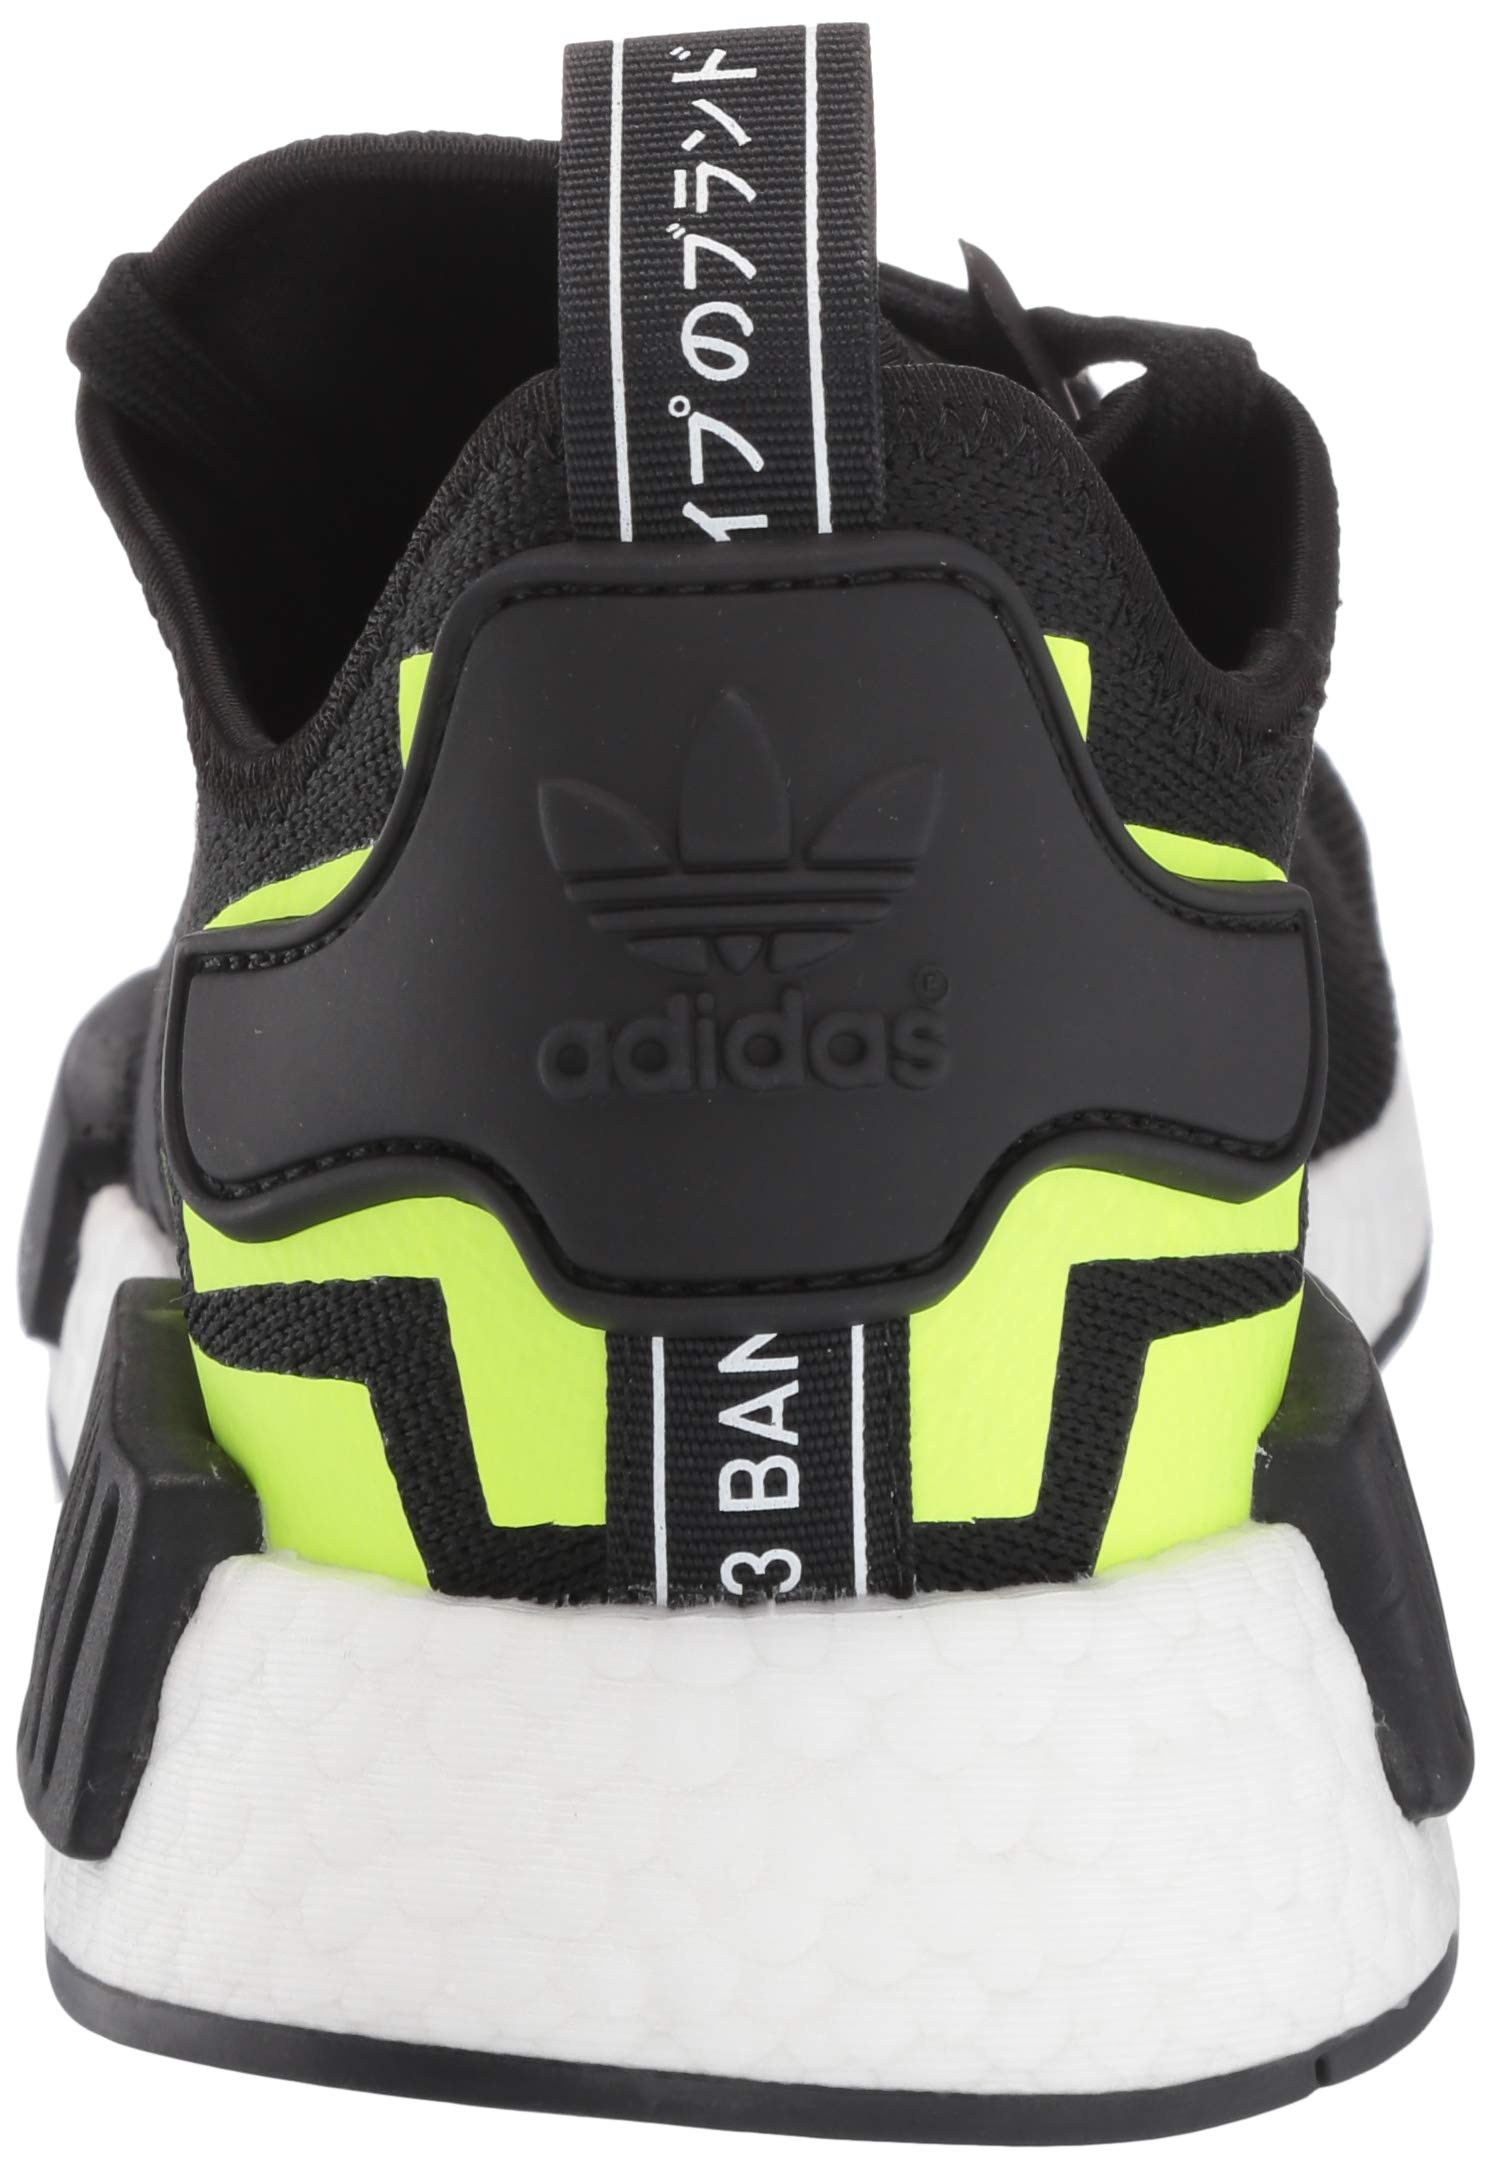 adidas Originals Men's NMD_R1 Running Shoe, Black/White 1, 4 M US by adidas Originals (Image #2)